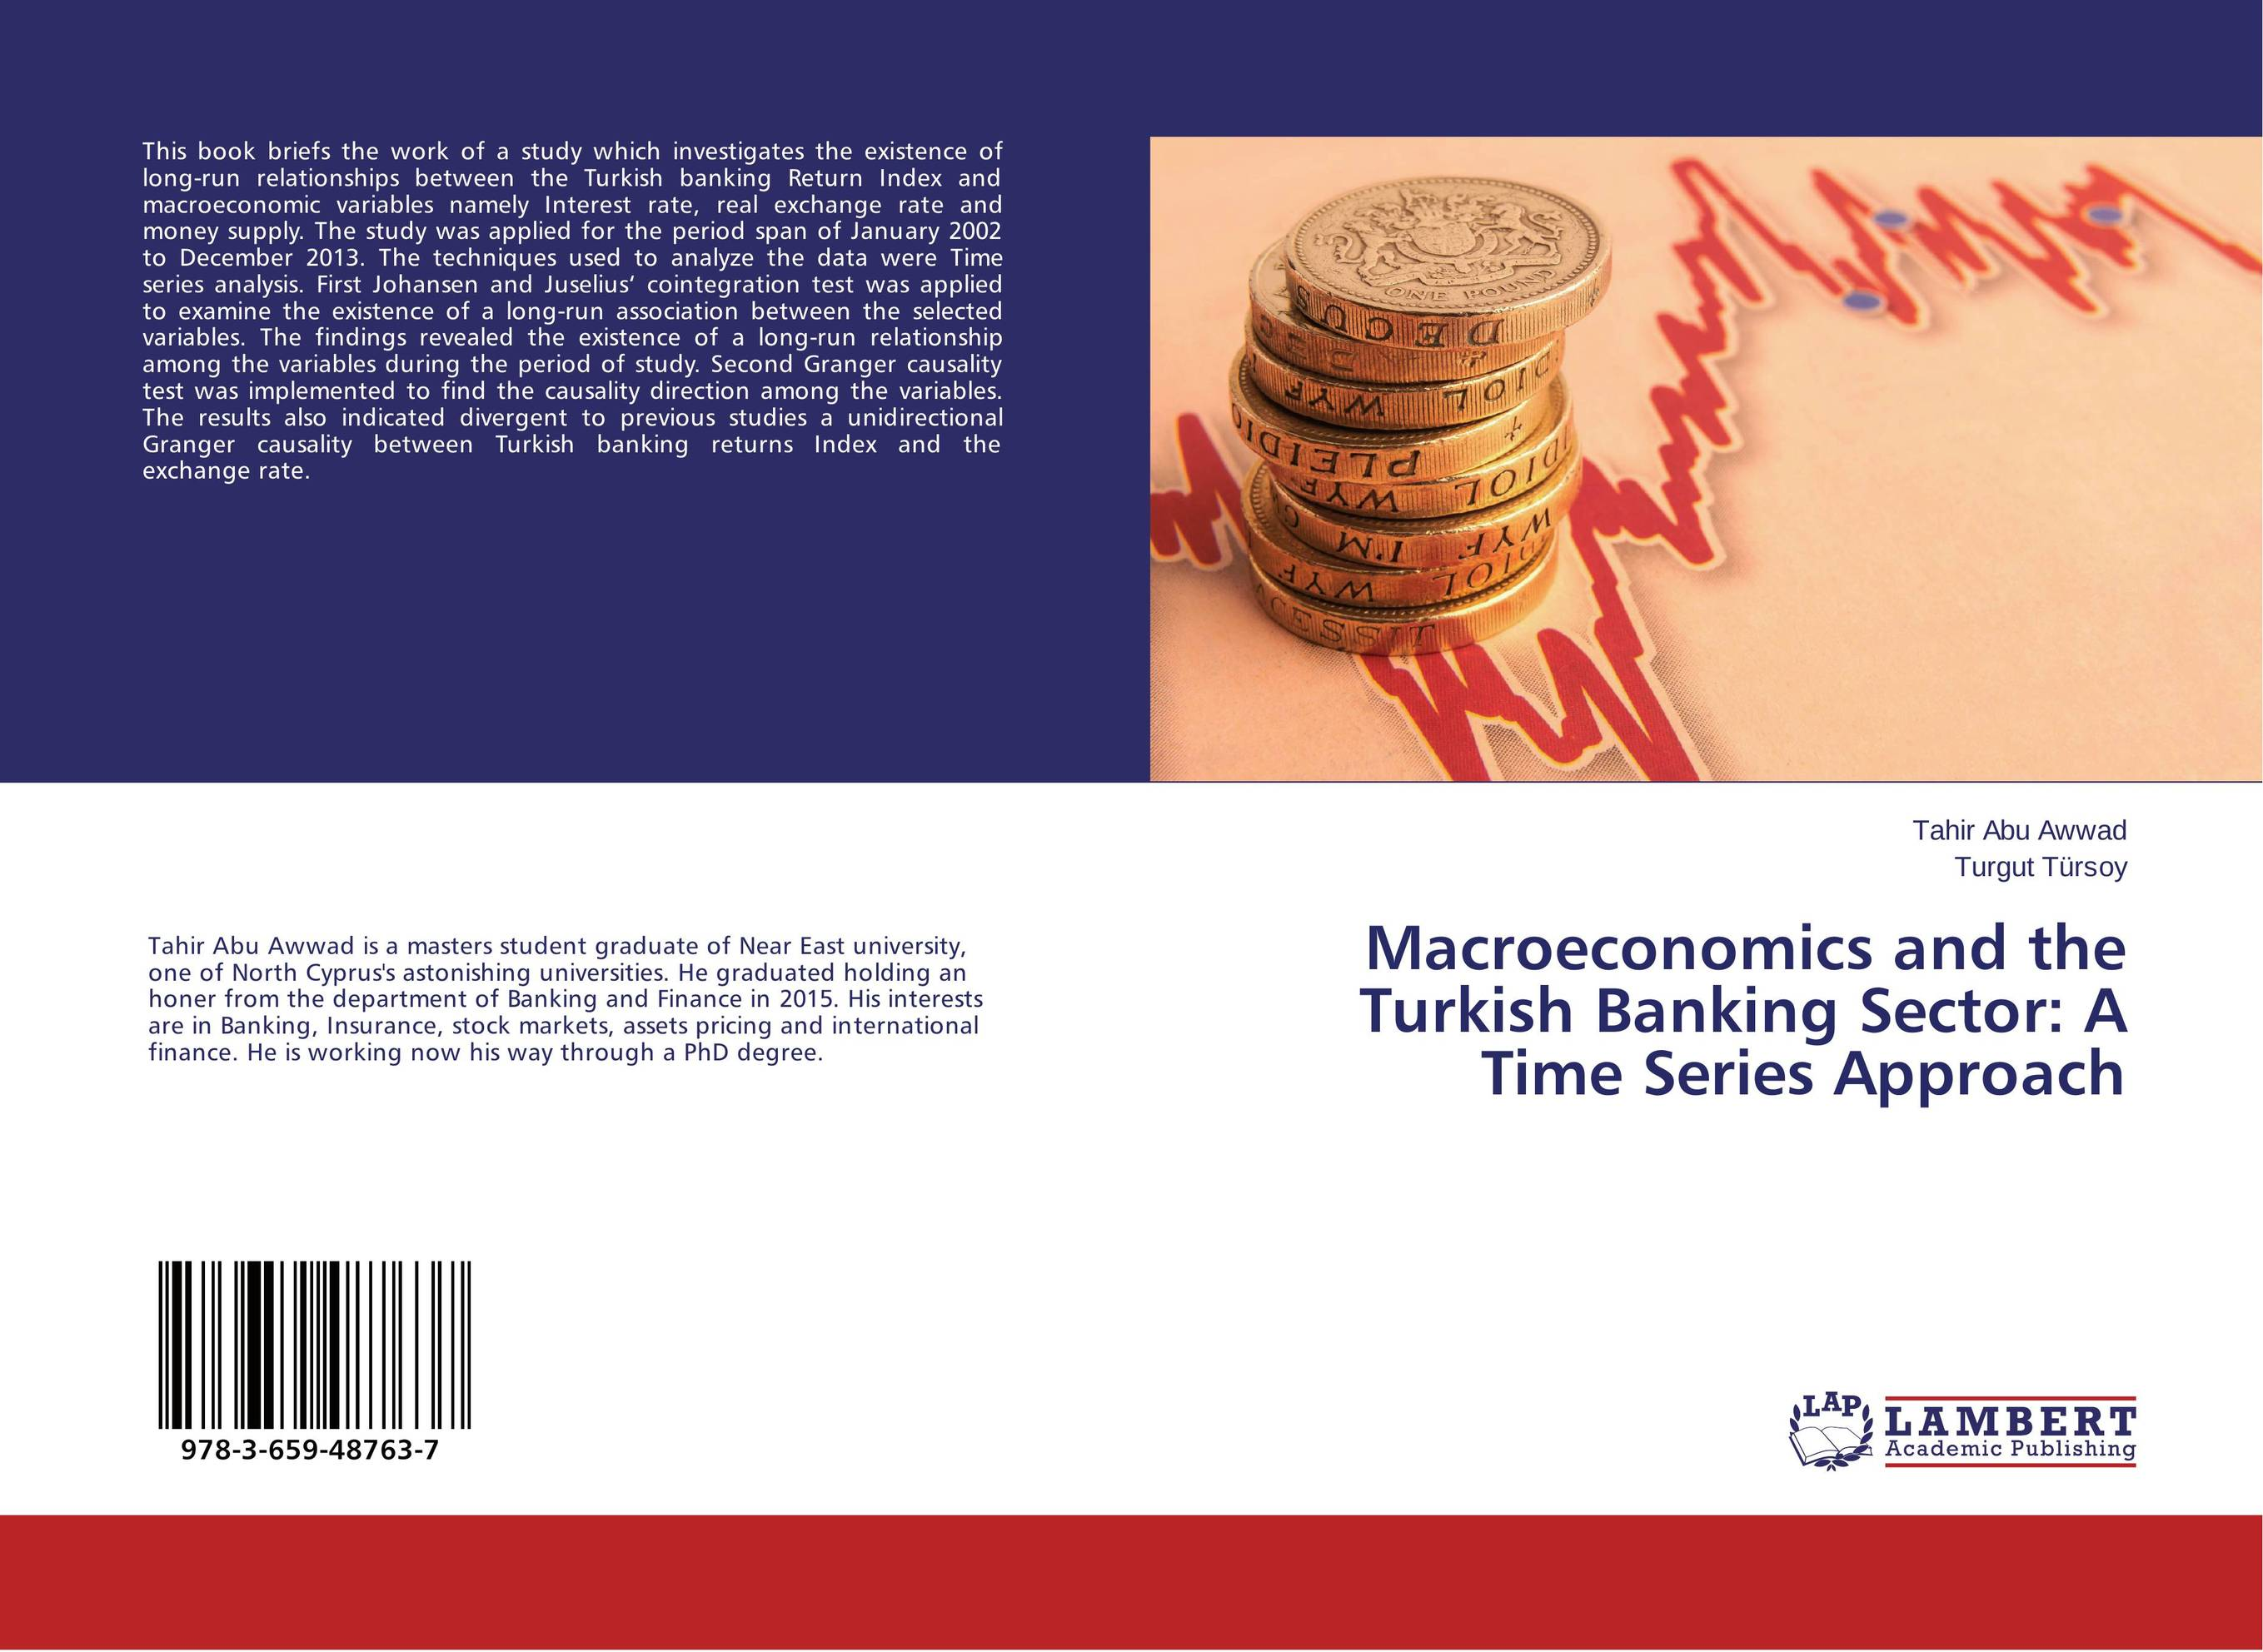 Macroeconomics and the Turkish Banking Sector: A Time Series Approach